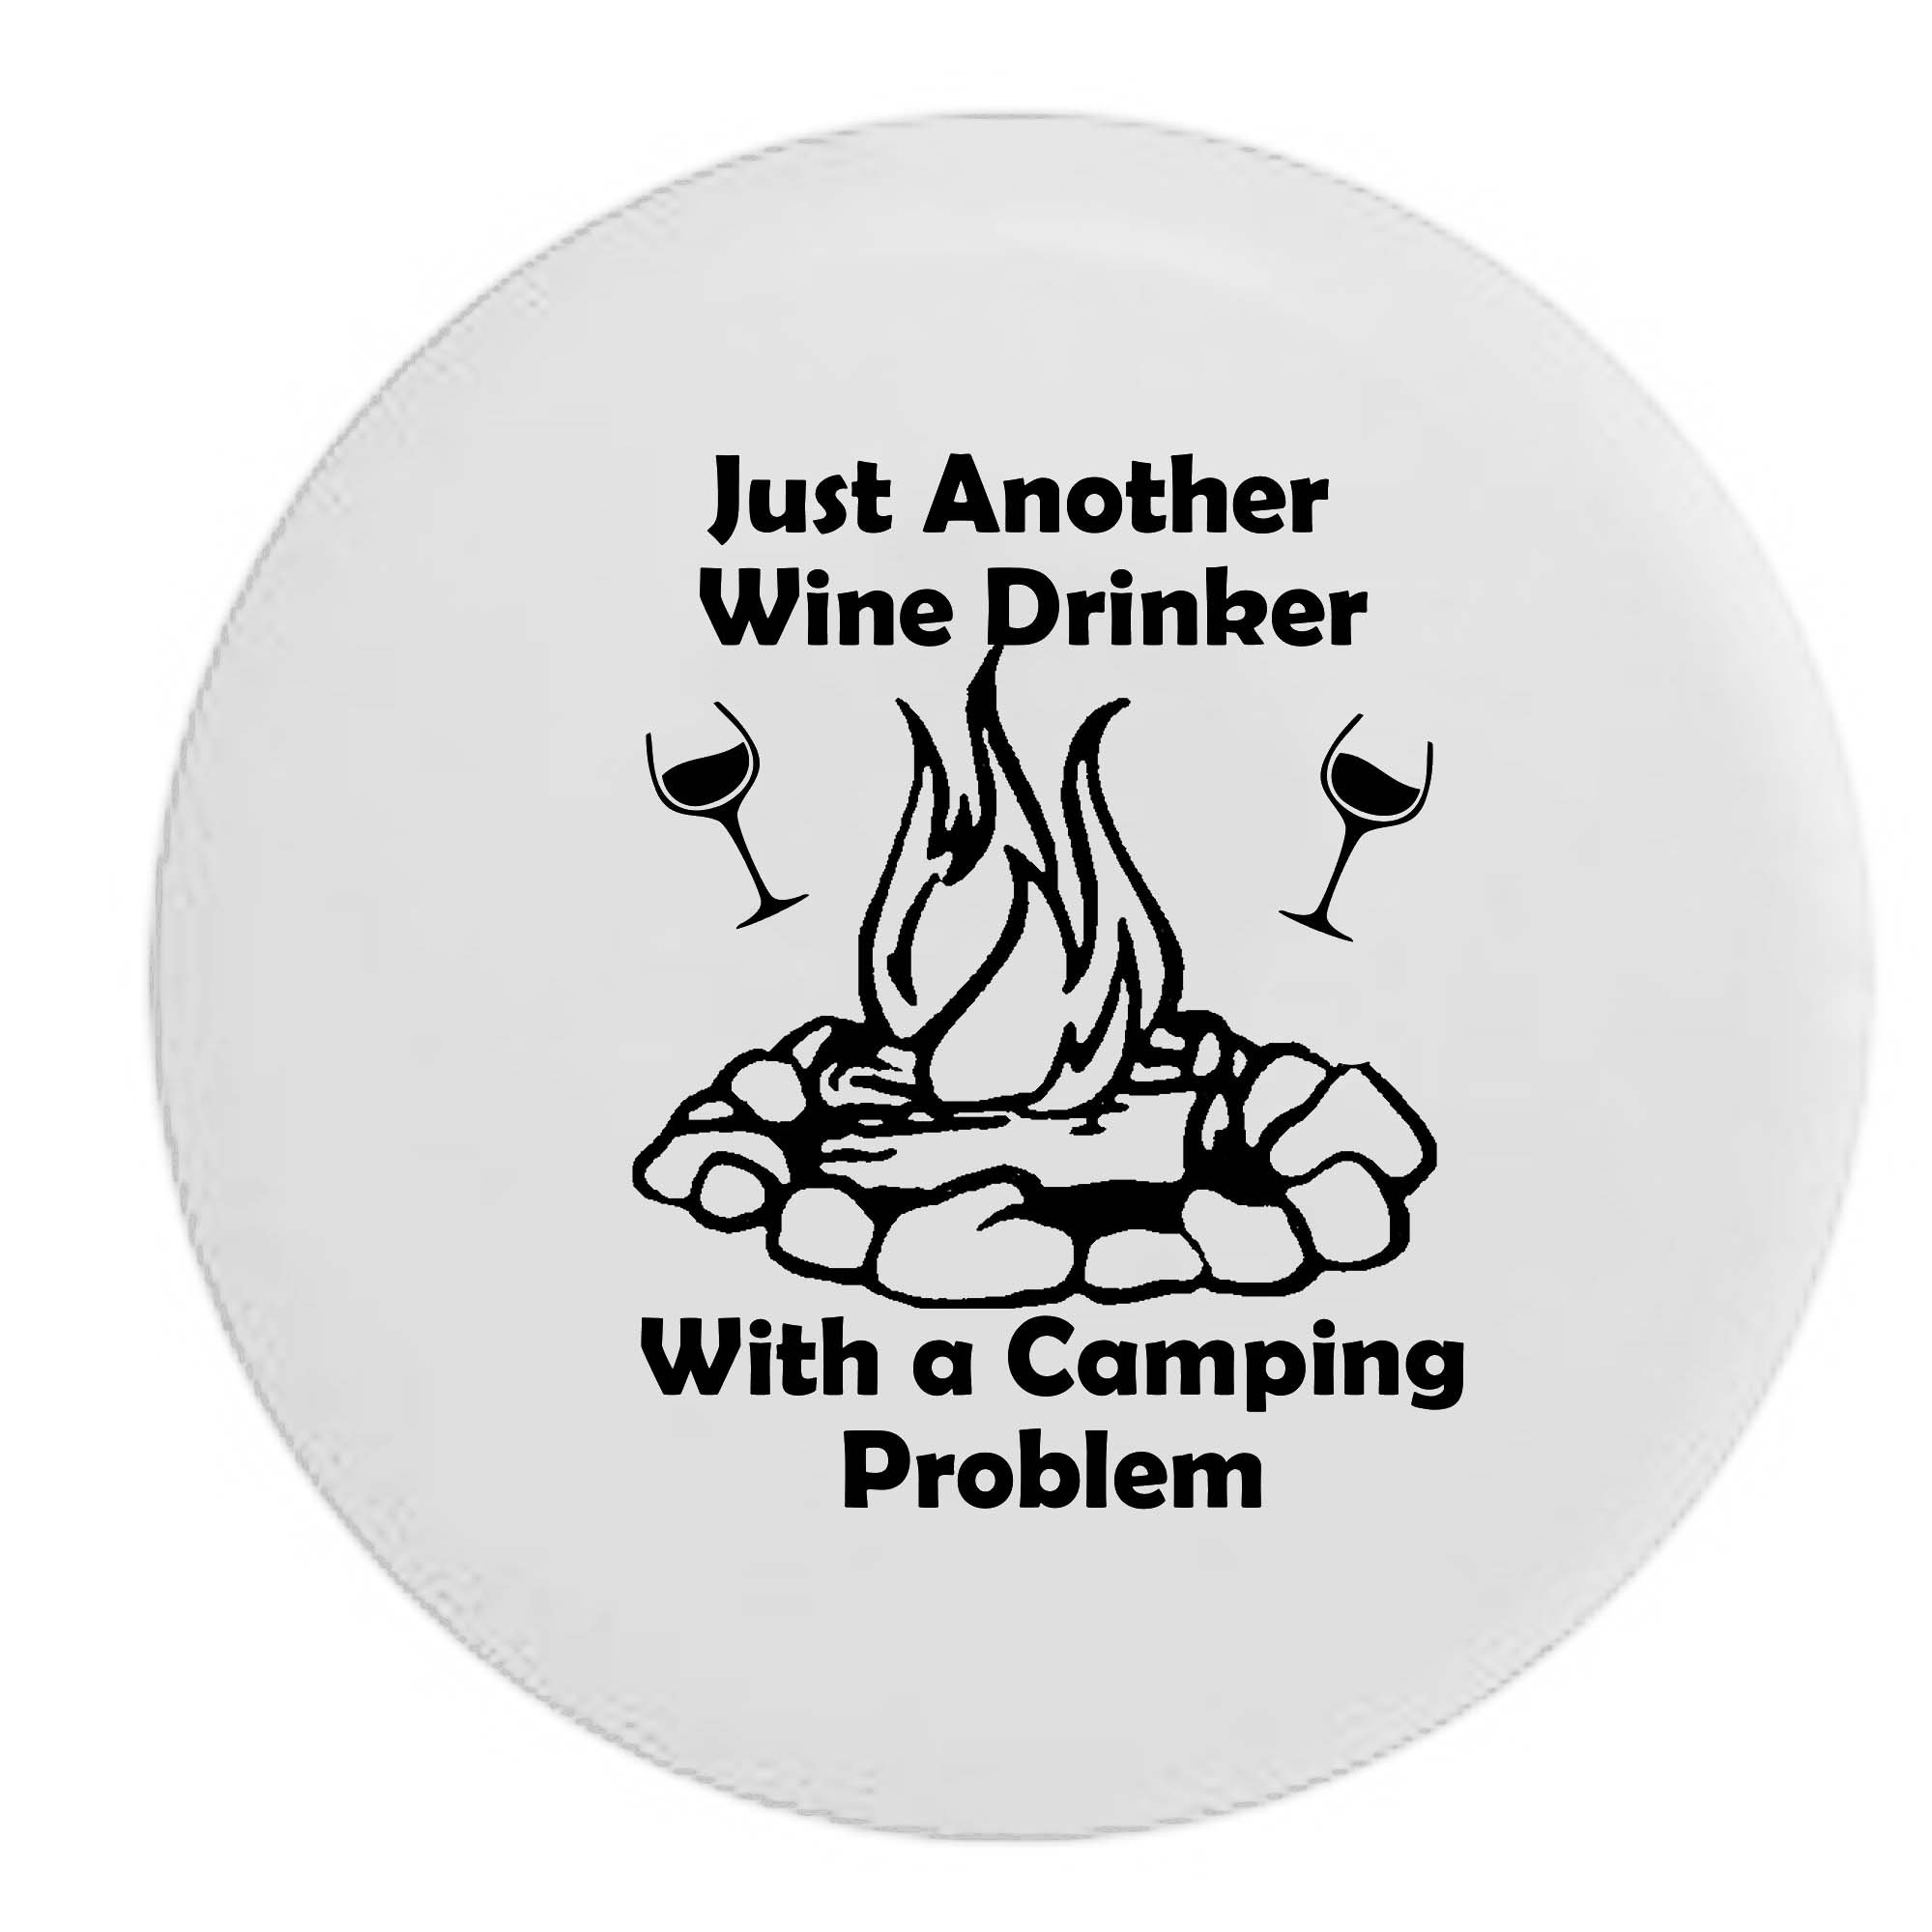 Pike Outdoors White - Just Another Wine Drinker with a Camping Problem Campfire Camping RV Spare Tire Cover OEM Vinyl Black 27.5 in by Pike Outdoors